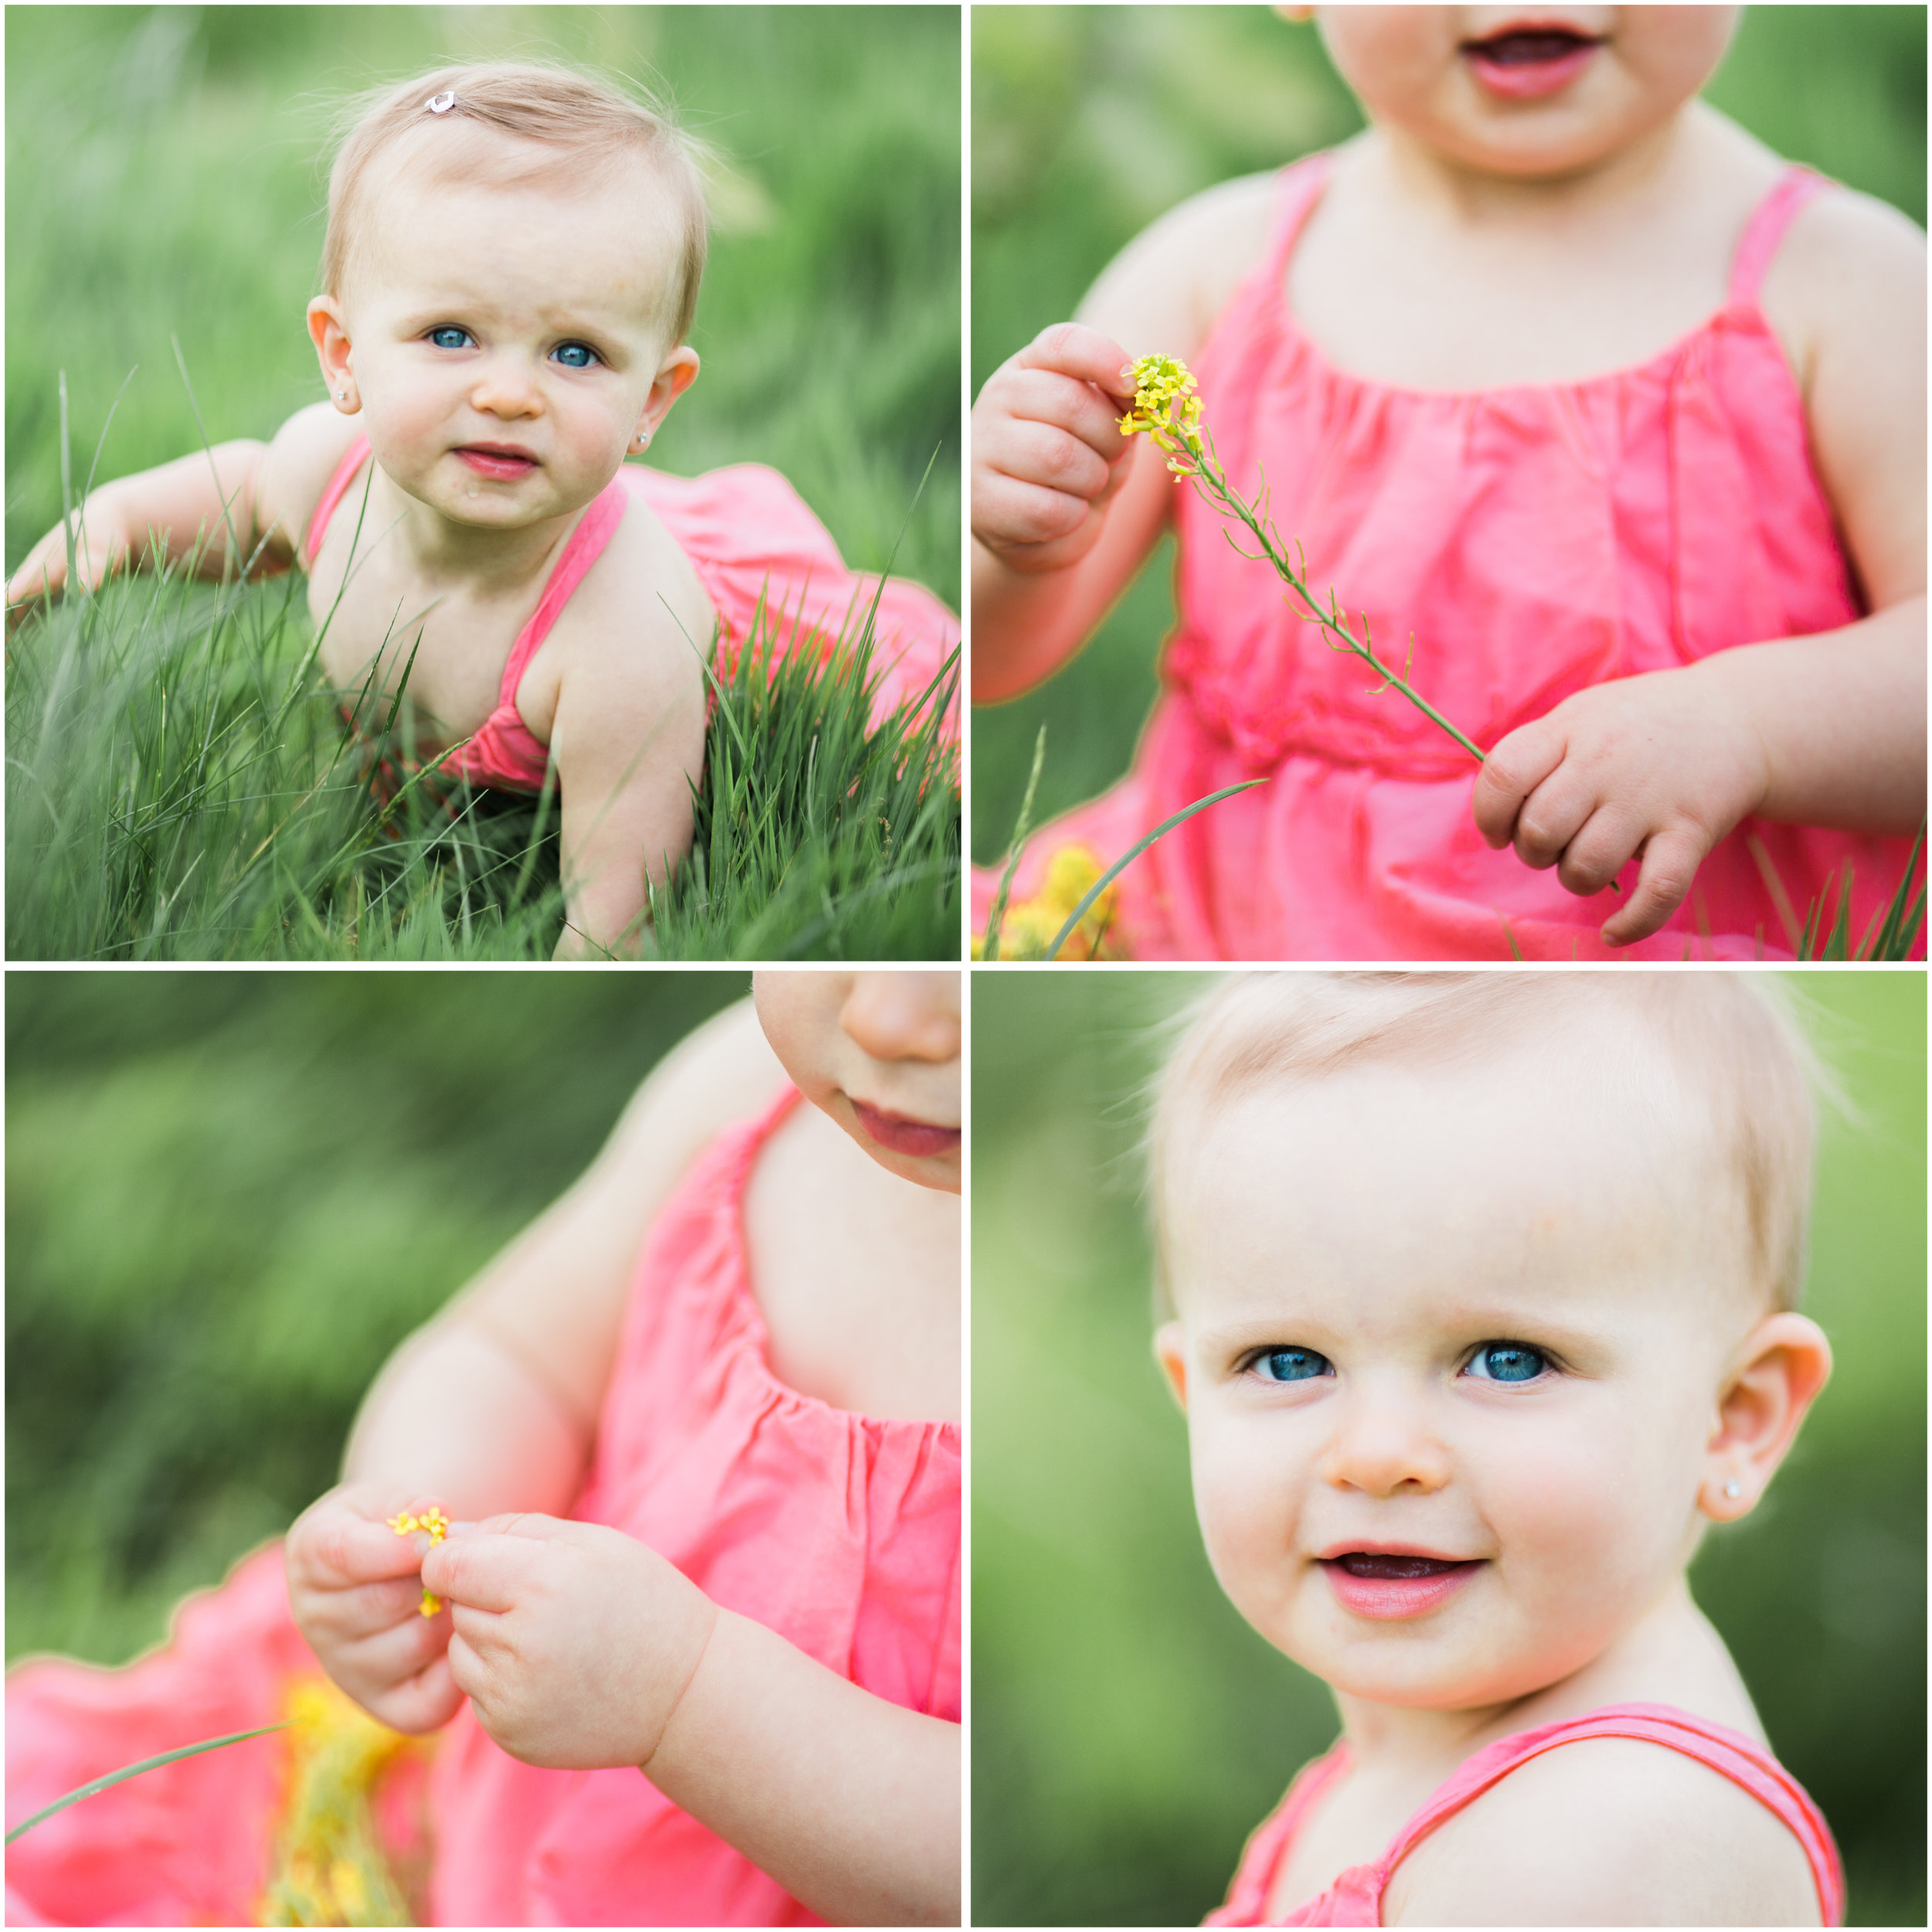 one year old baby girl body details | cleveland, ohio kids photographer